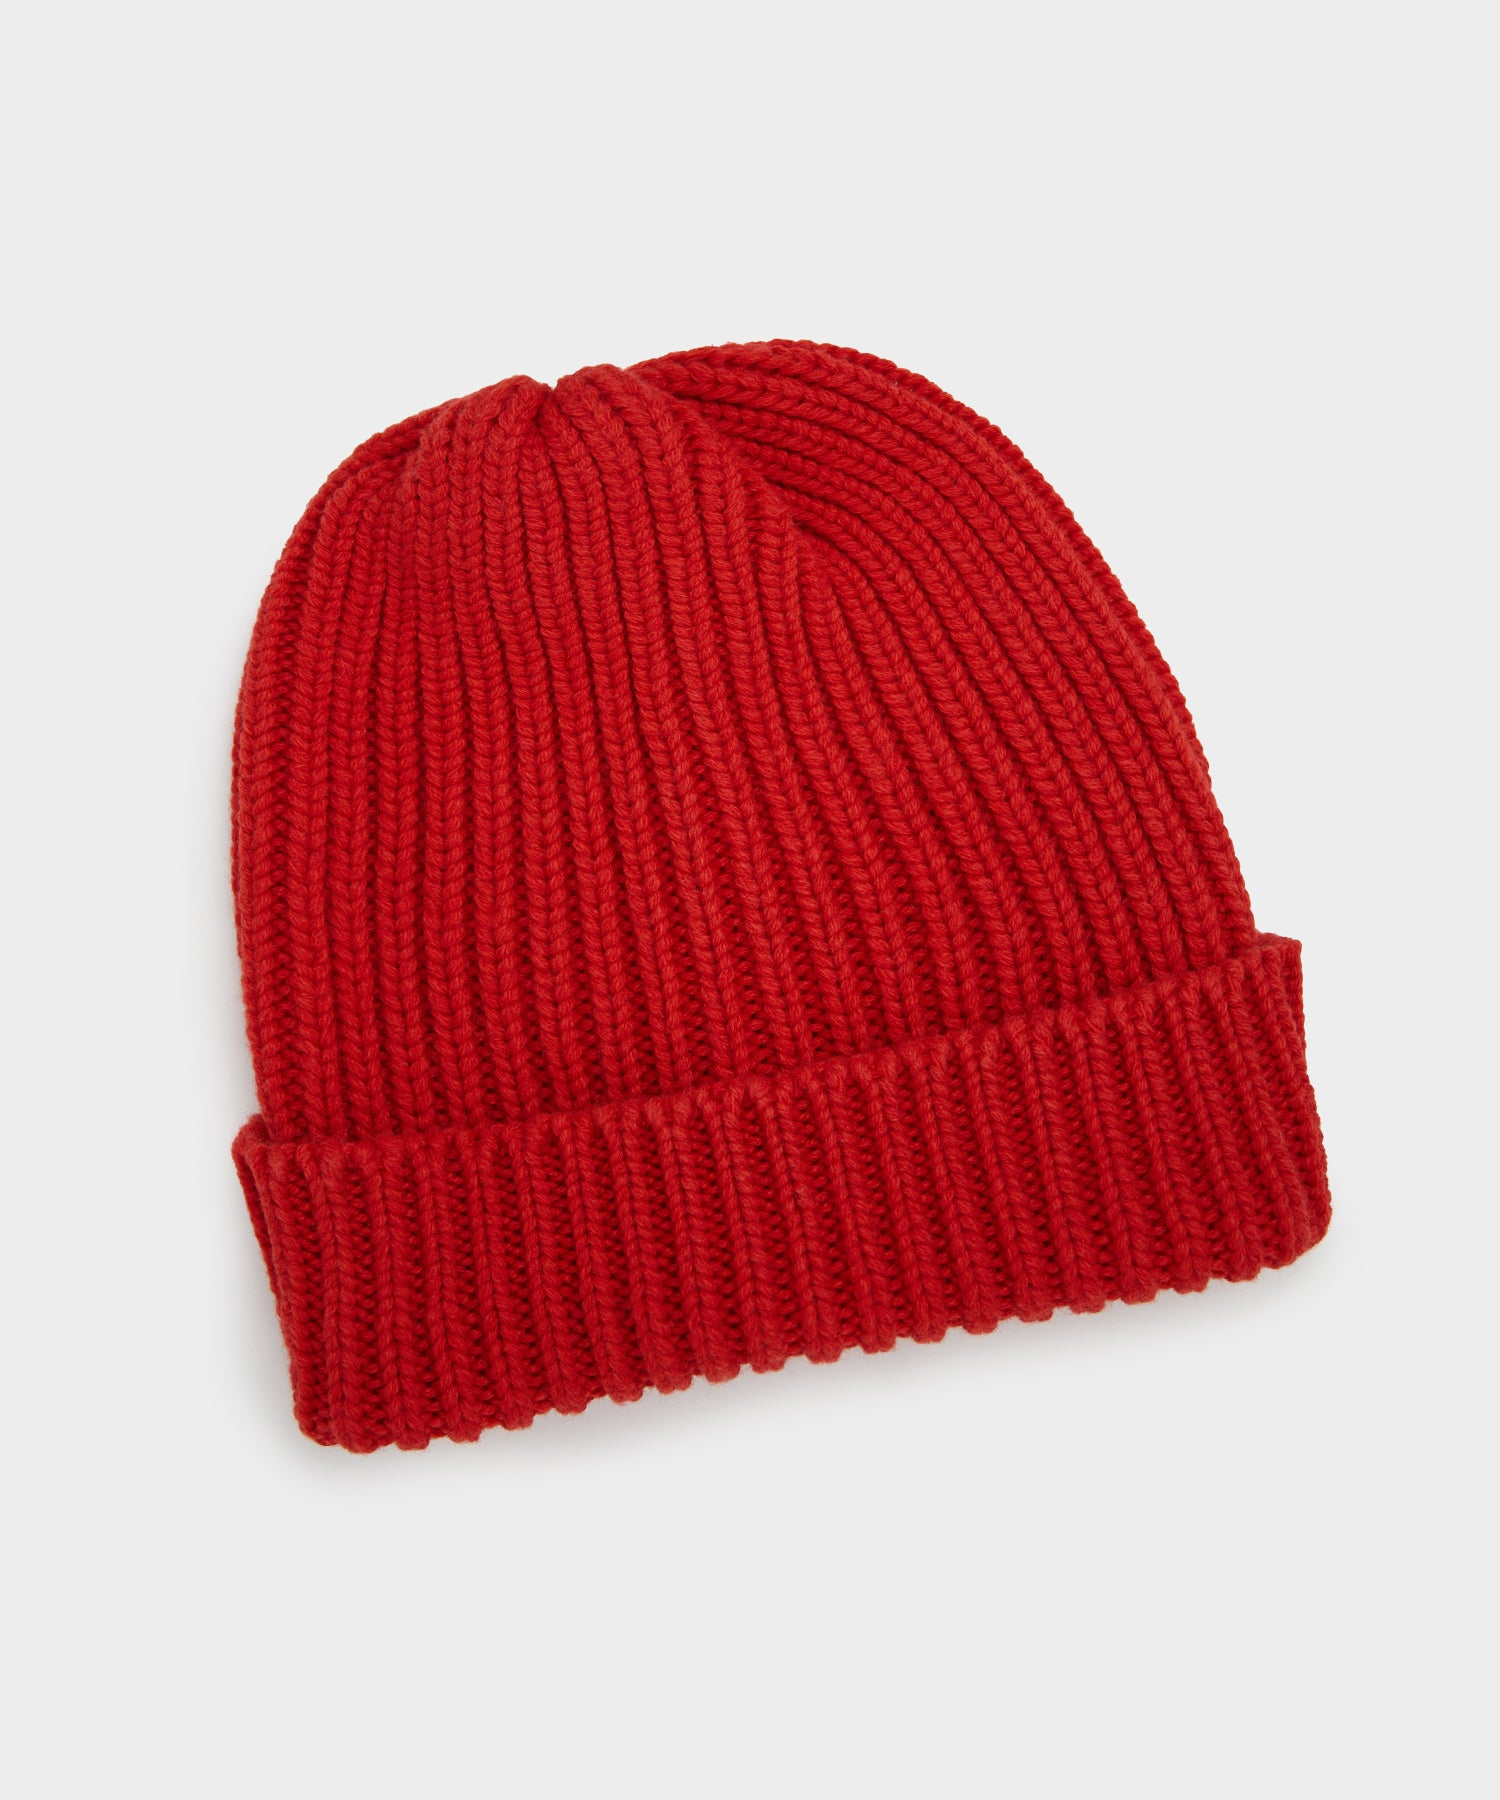 Corgi Cotton Cashmere Beanie in Red